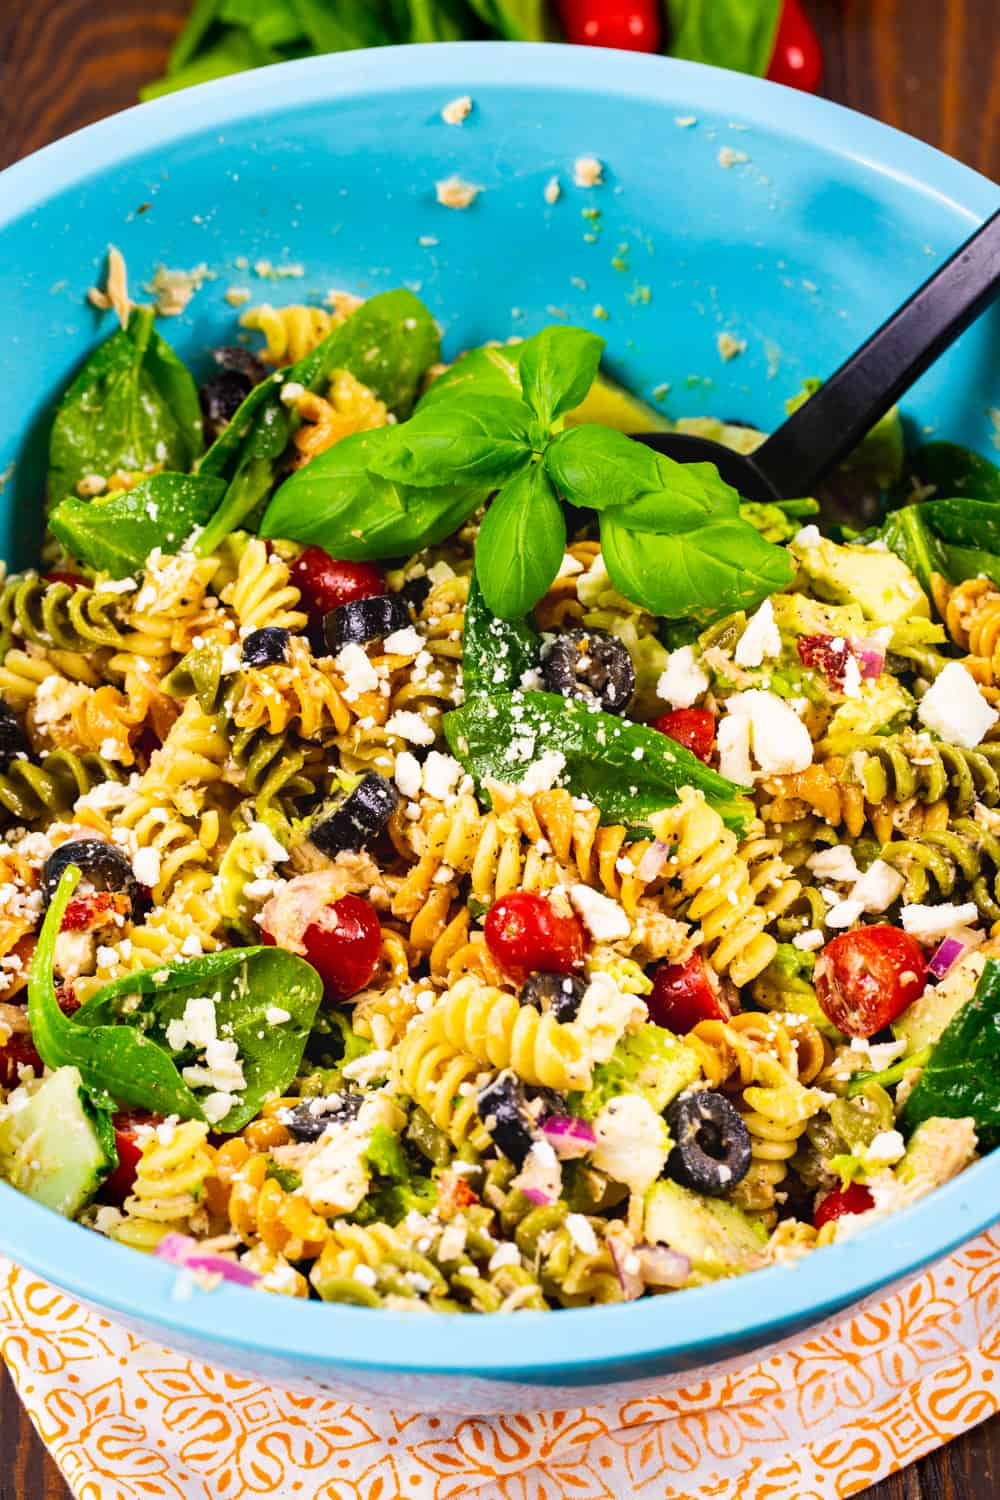 Tuna Pasta Salad with Balsamic Vinaigrette.in a large blue bowl.